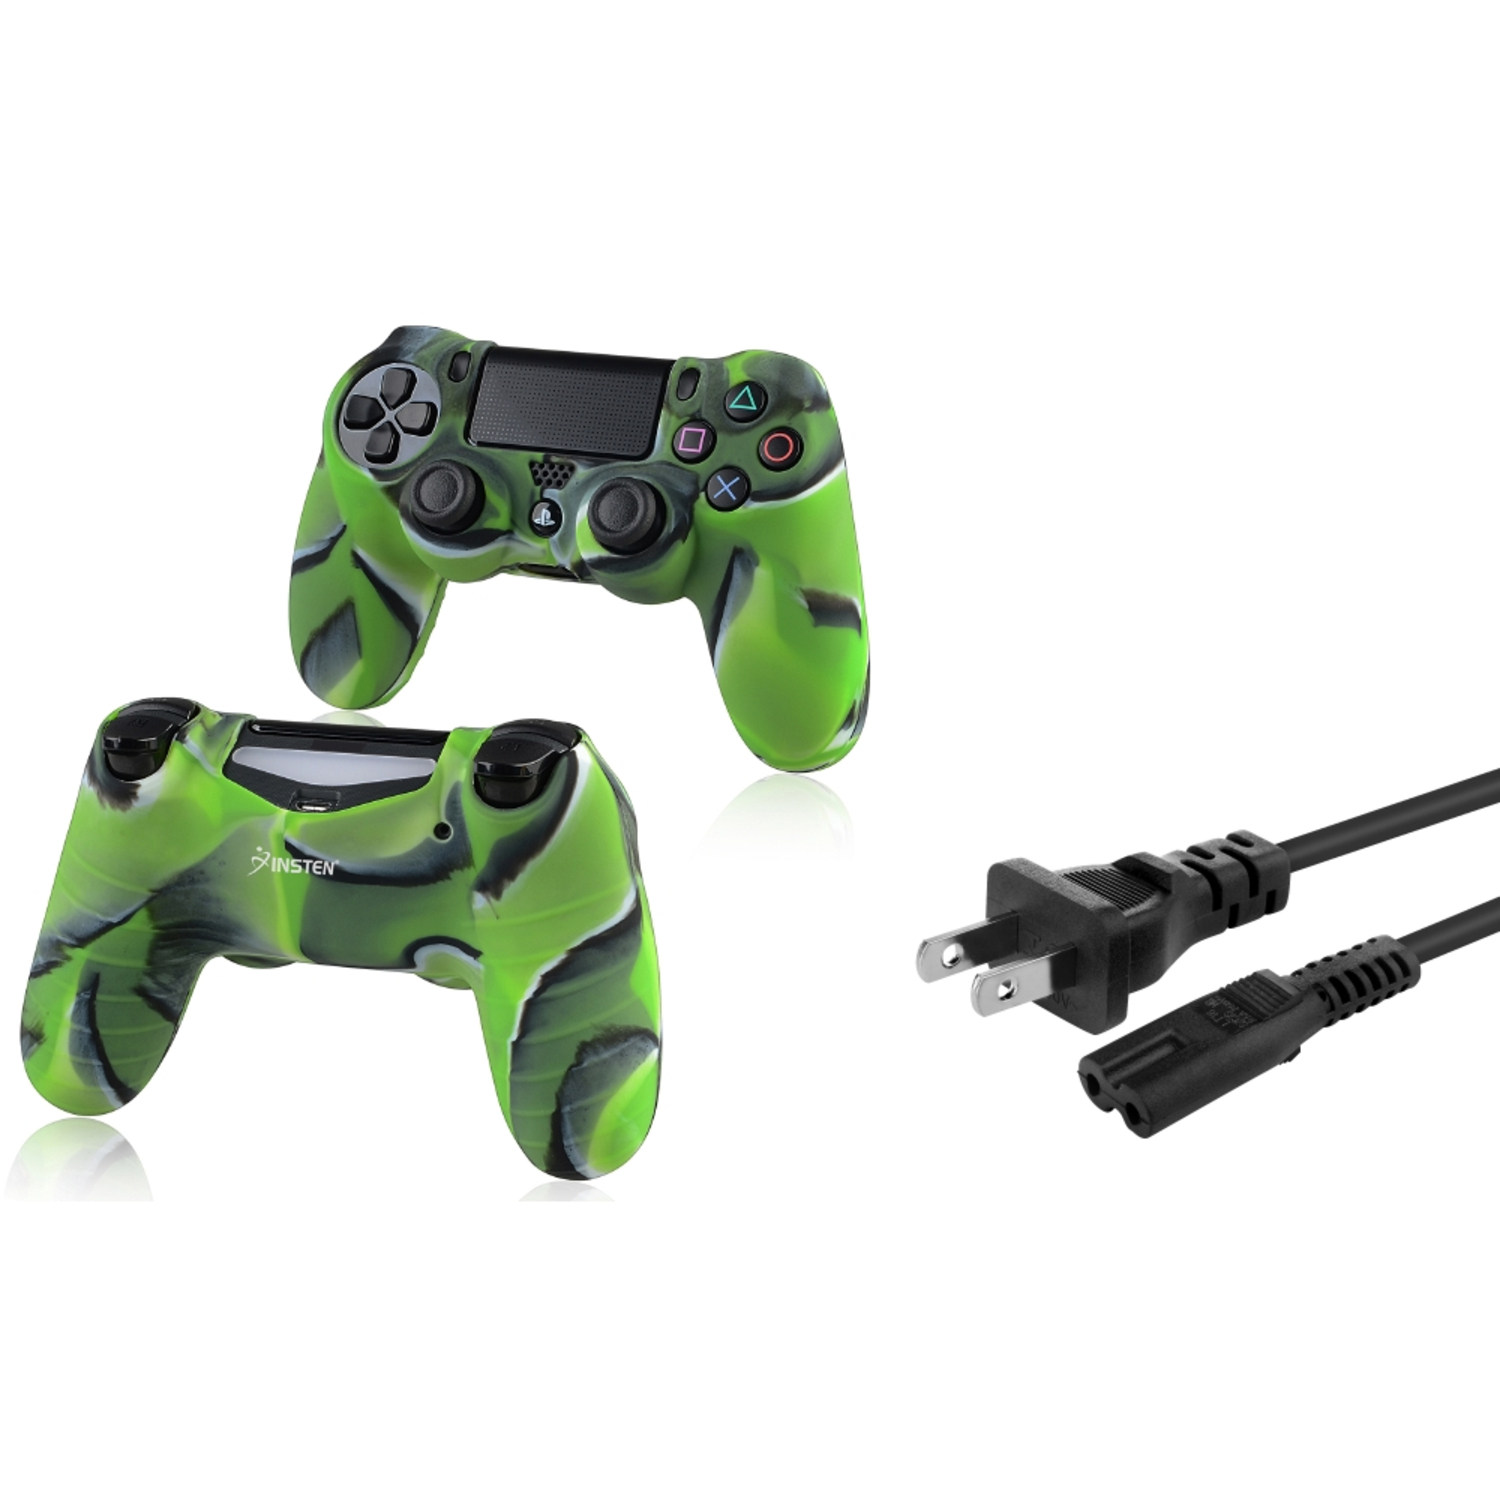 Insten US 2-Prong Port AC Power Cord\/Cable+Camouflage Navy Green Skin Case Cover for Sony PS4 Playstation 4